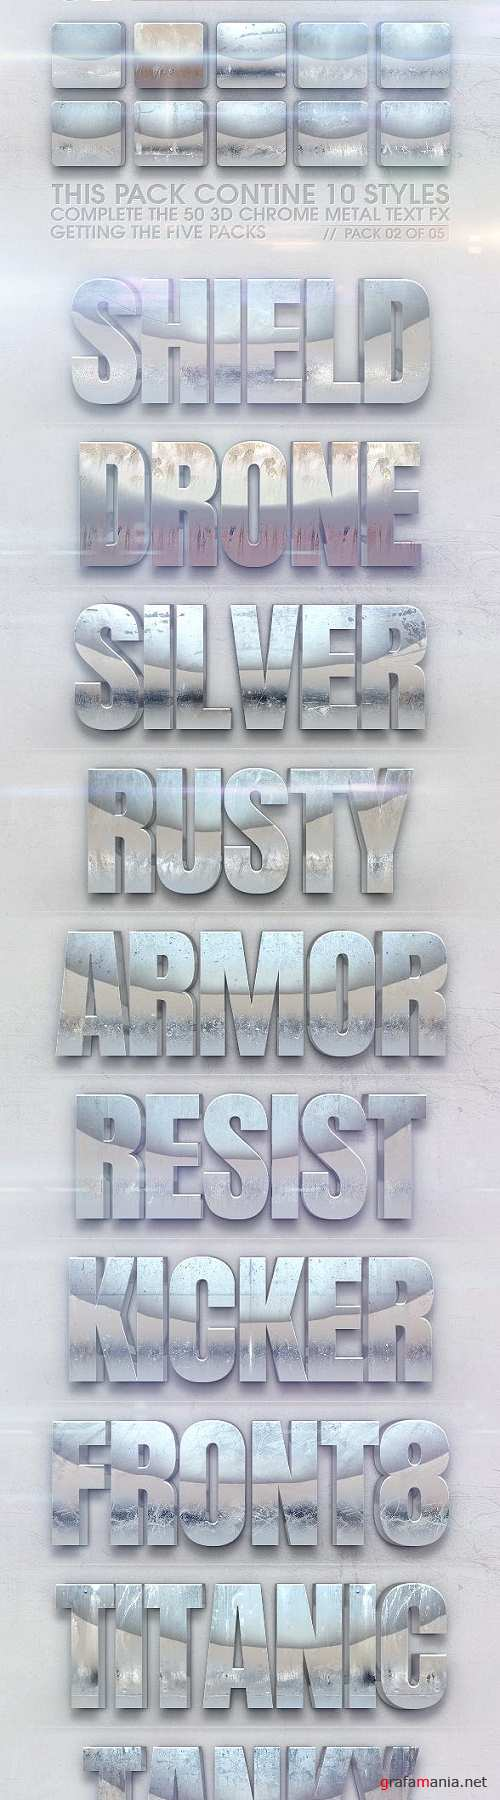 3D Chrome Metal Text FX 02 of 05 23112023